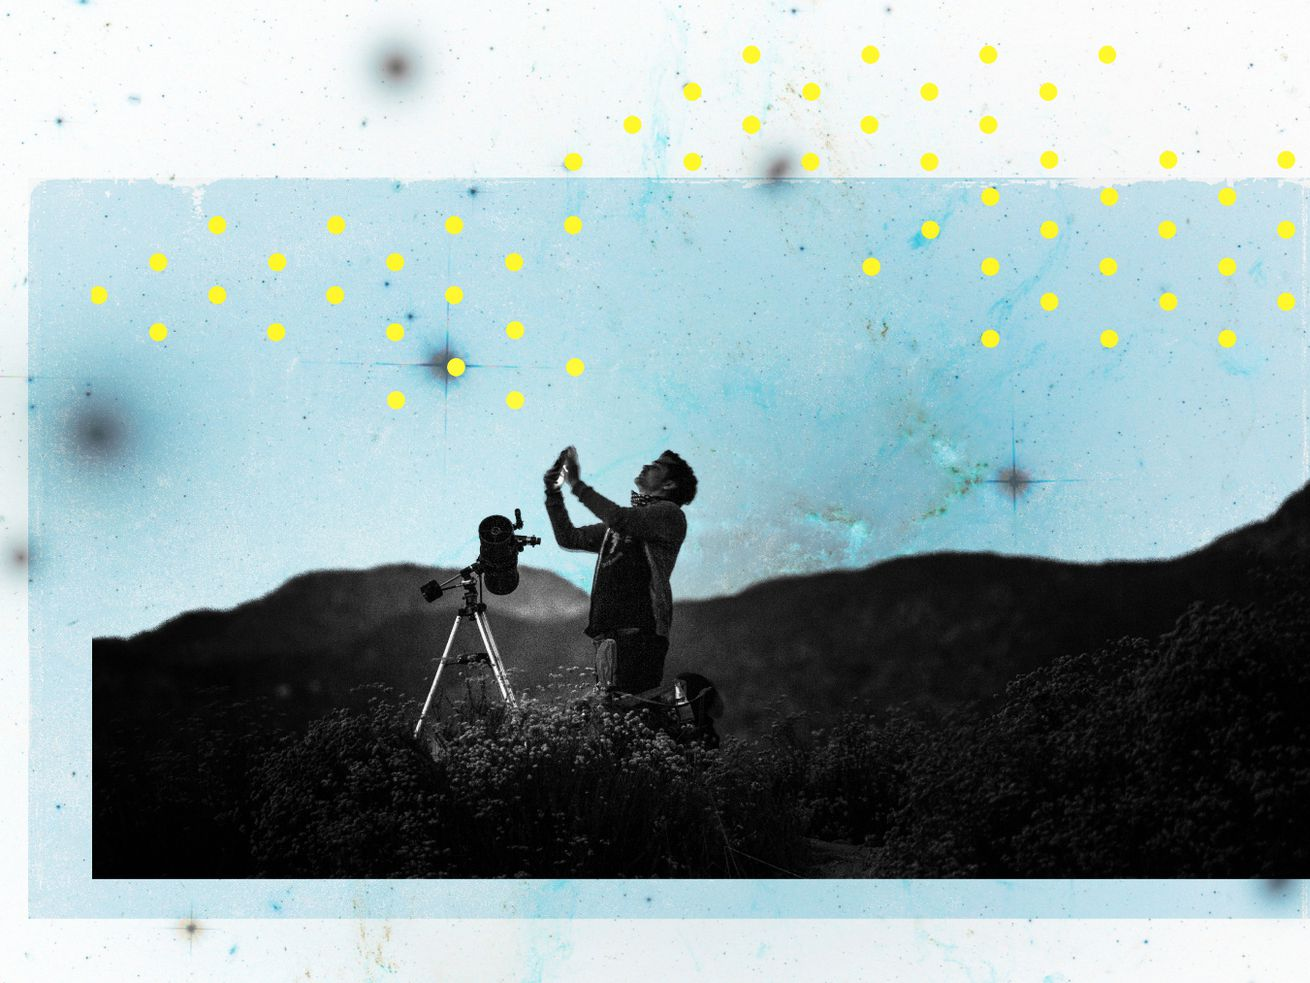 Photoillustration of a person kneeling on a hillside and using a telescope on a tripod.